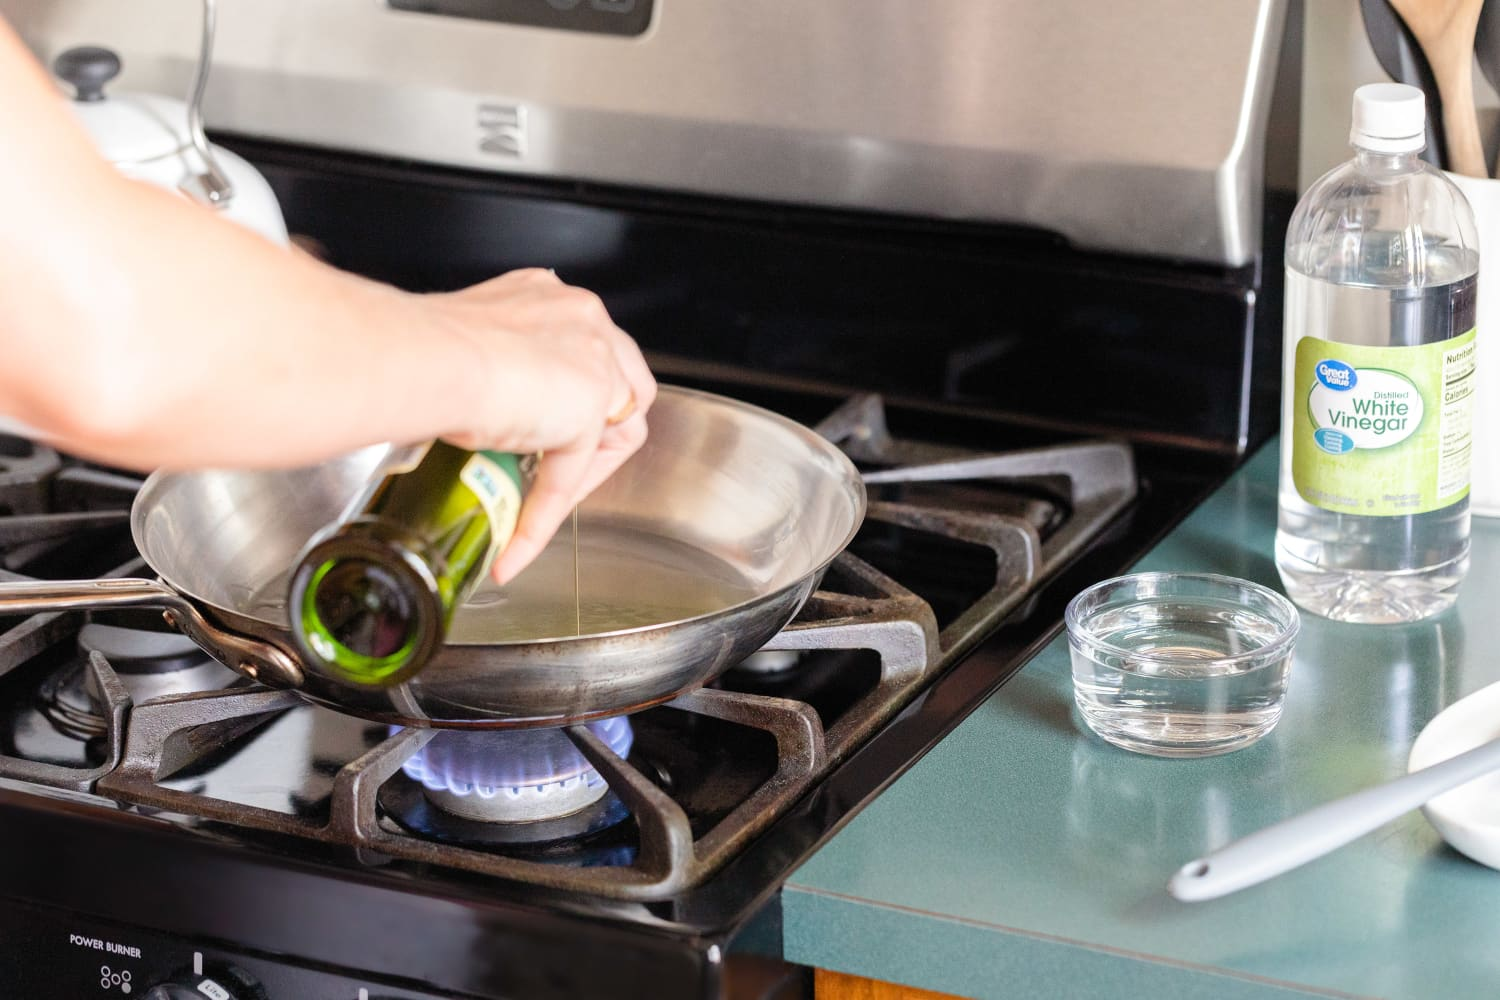 You Should Keep a Bowl of Vinegar Next to Your Stove